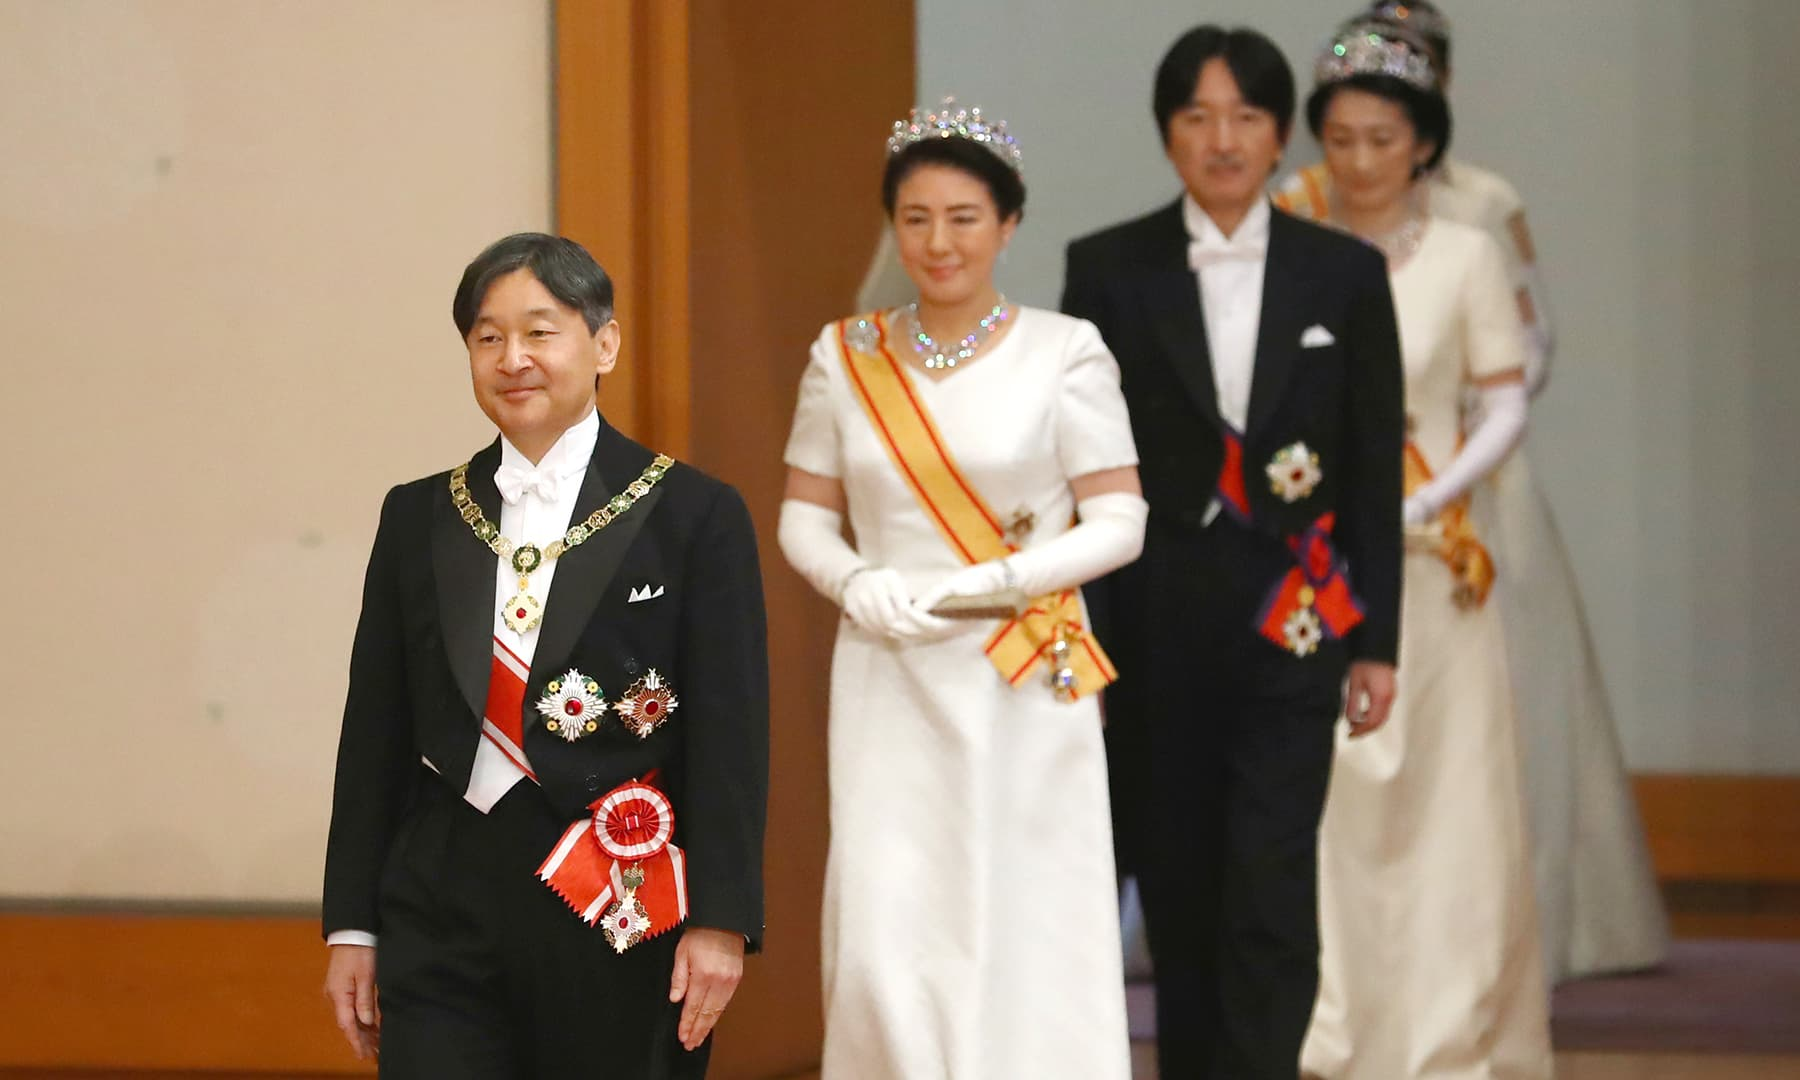 Japan's new Emperor Naruhito, followed by new Empress Masako, Crown Prince and Crown Princess Akishino, walks to make his first address during a ritual after succeeding his father Akihito at Imperial Palace in Tokyo. — AP